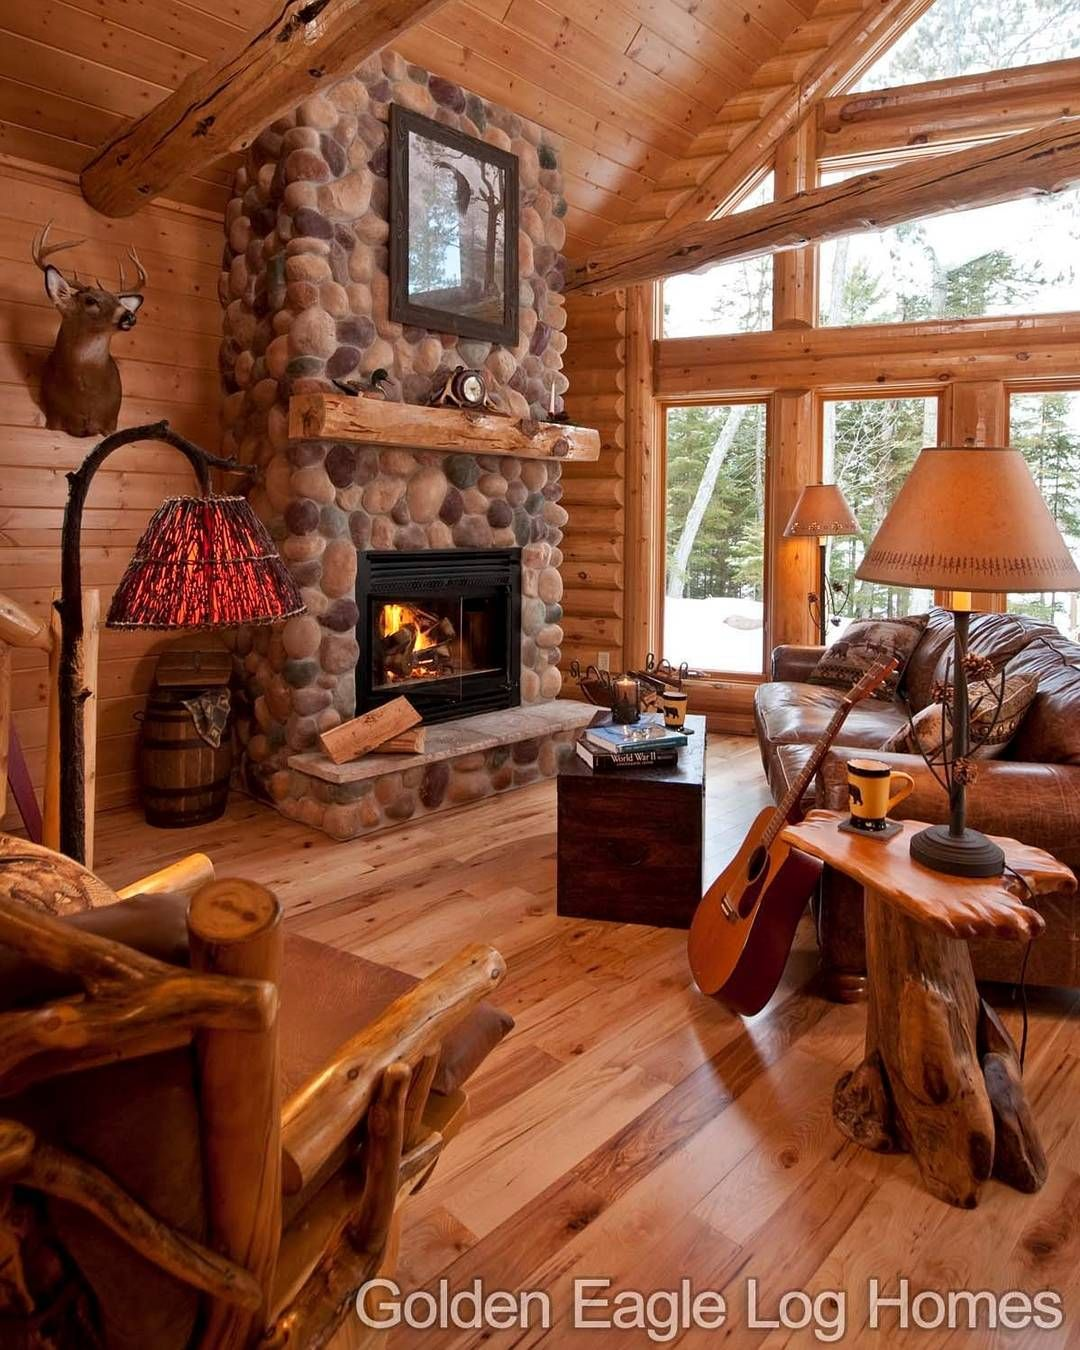 Golden eagle log homes  beautiful fireplace and wood floor in our modified also unique cabin interior ideas small design rh pinterest